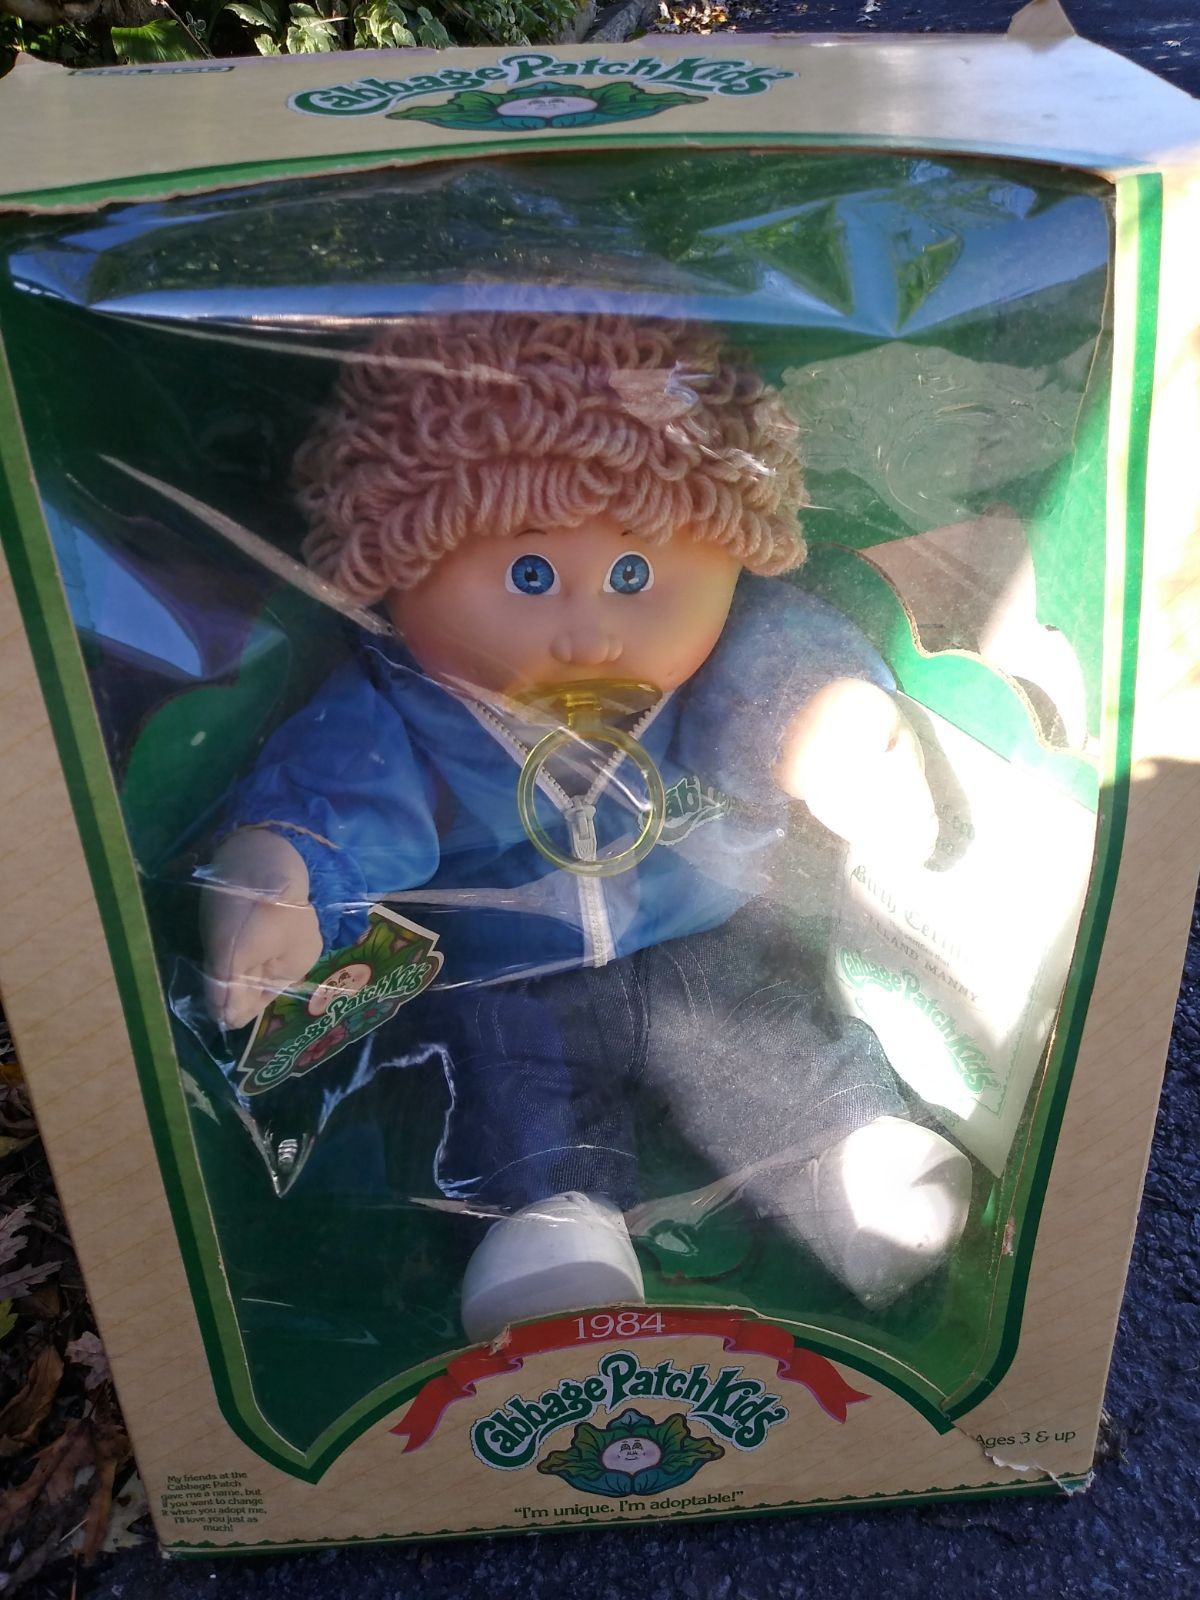 Original 1984 Boy Cabbage Patch Doll Still Attached Inside Box Never Opened Cabbage Patch Dolls Cabbage Patch Kids Dolls Cabbage Patch Kids